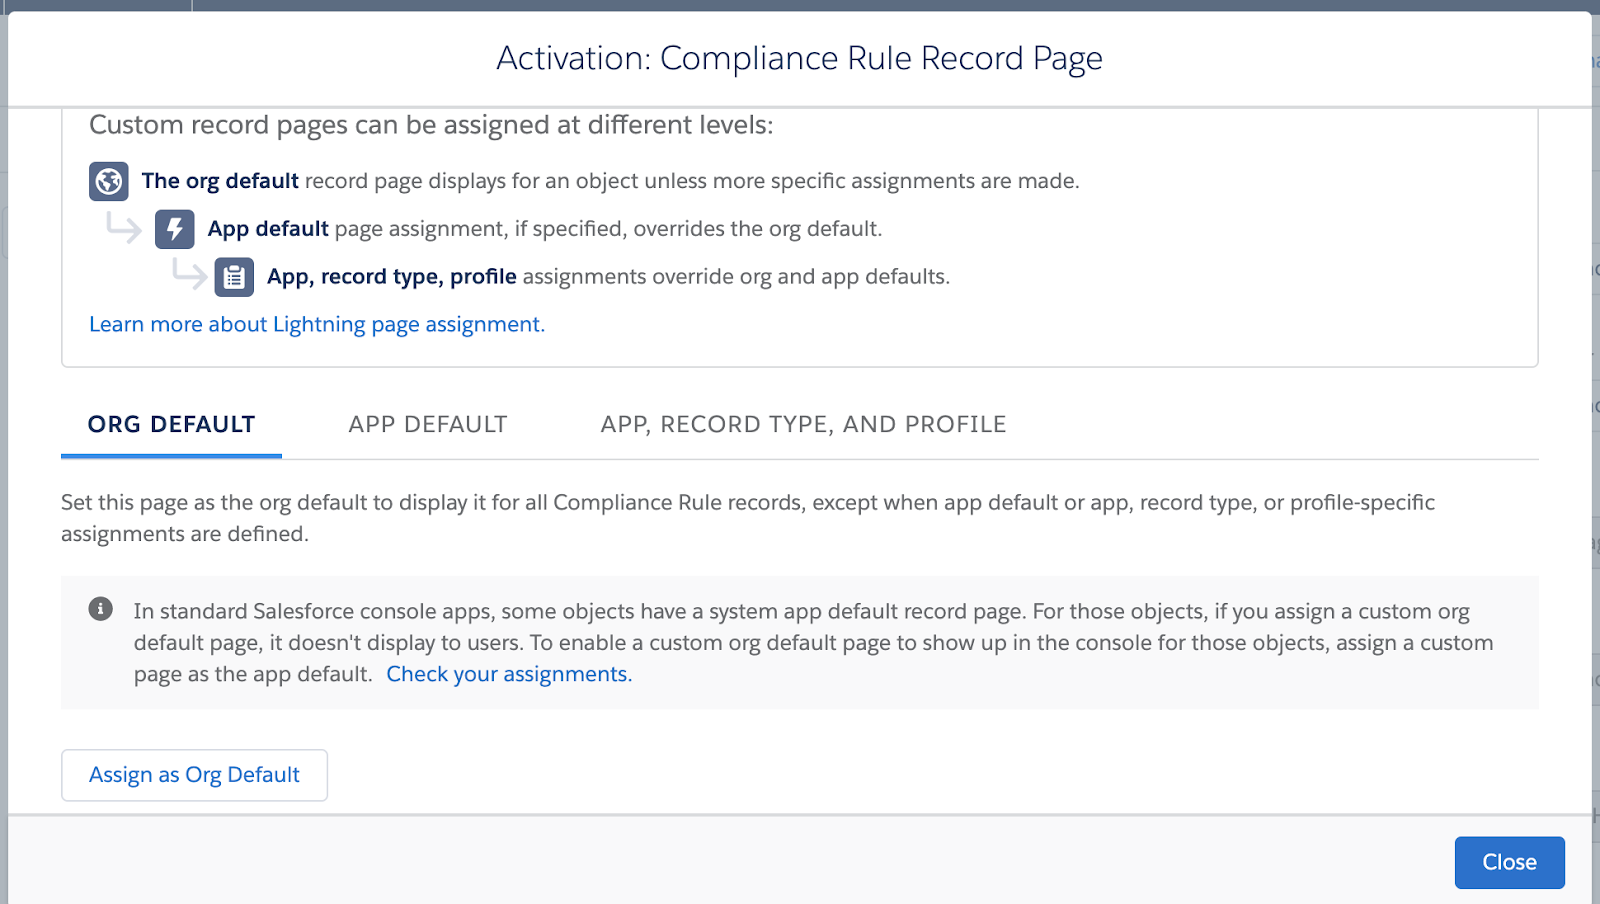 Activation: Compliance Rule Record Page